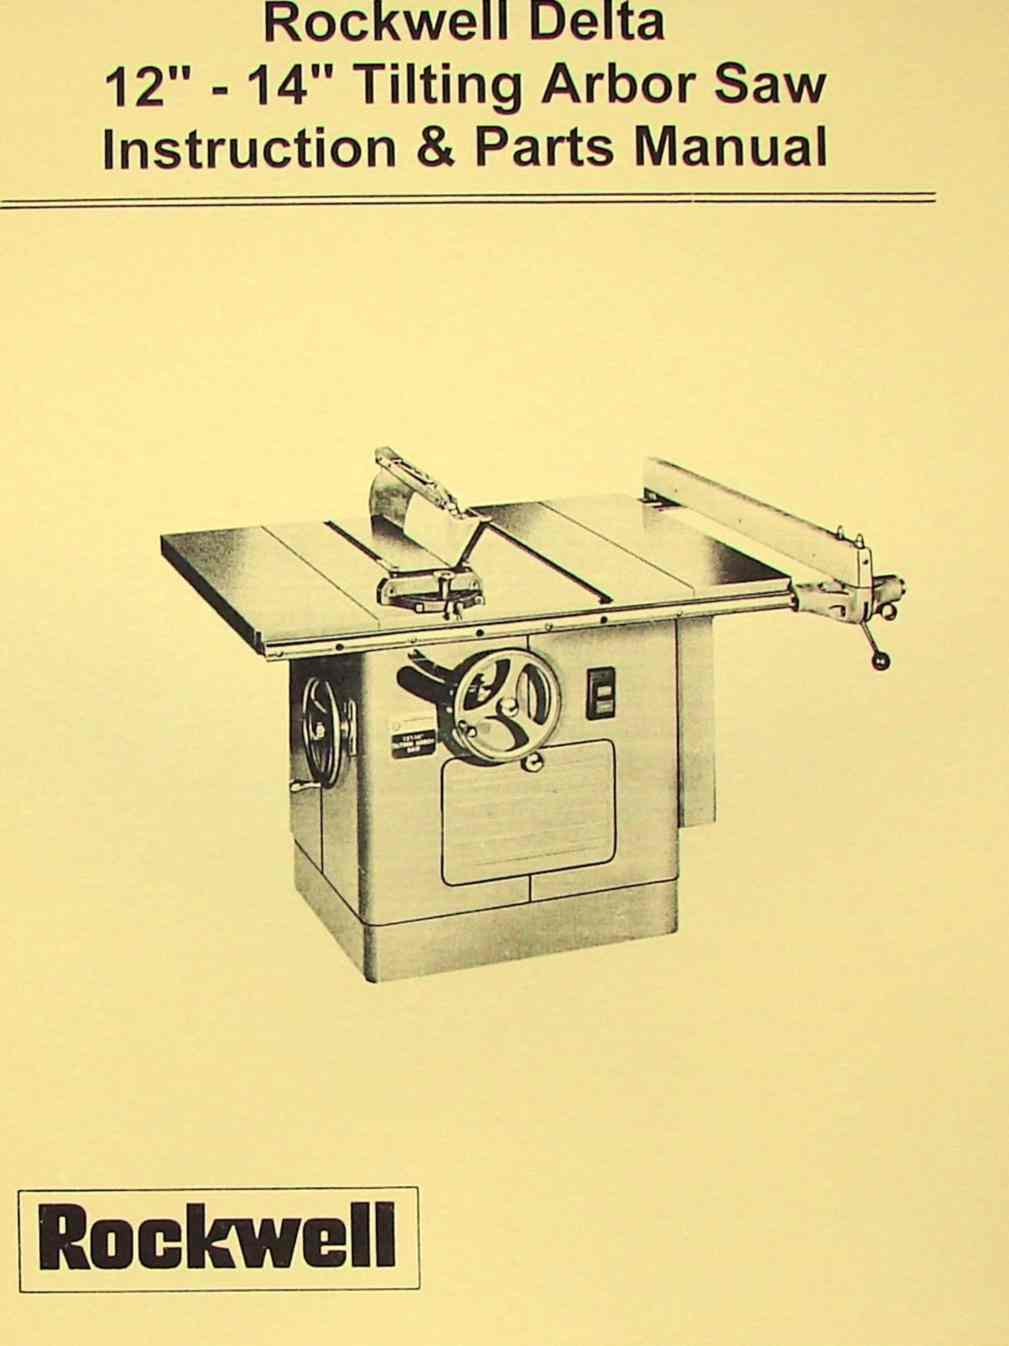 Delta rockwell 12 14 tilting arbor table saw operating parts delta rockwell 12 14 tilting arbor table saw operating parts manual ozark tool manuals books keyboard keysfo Gallery